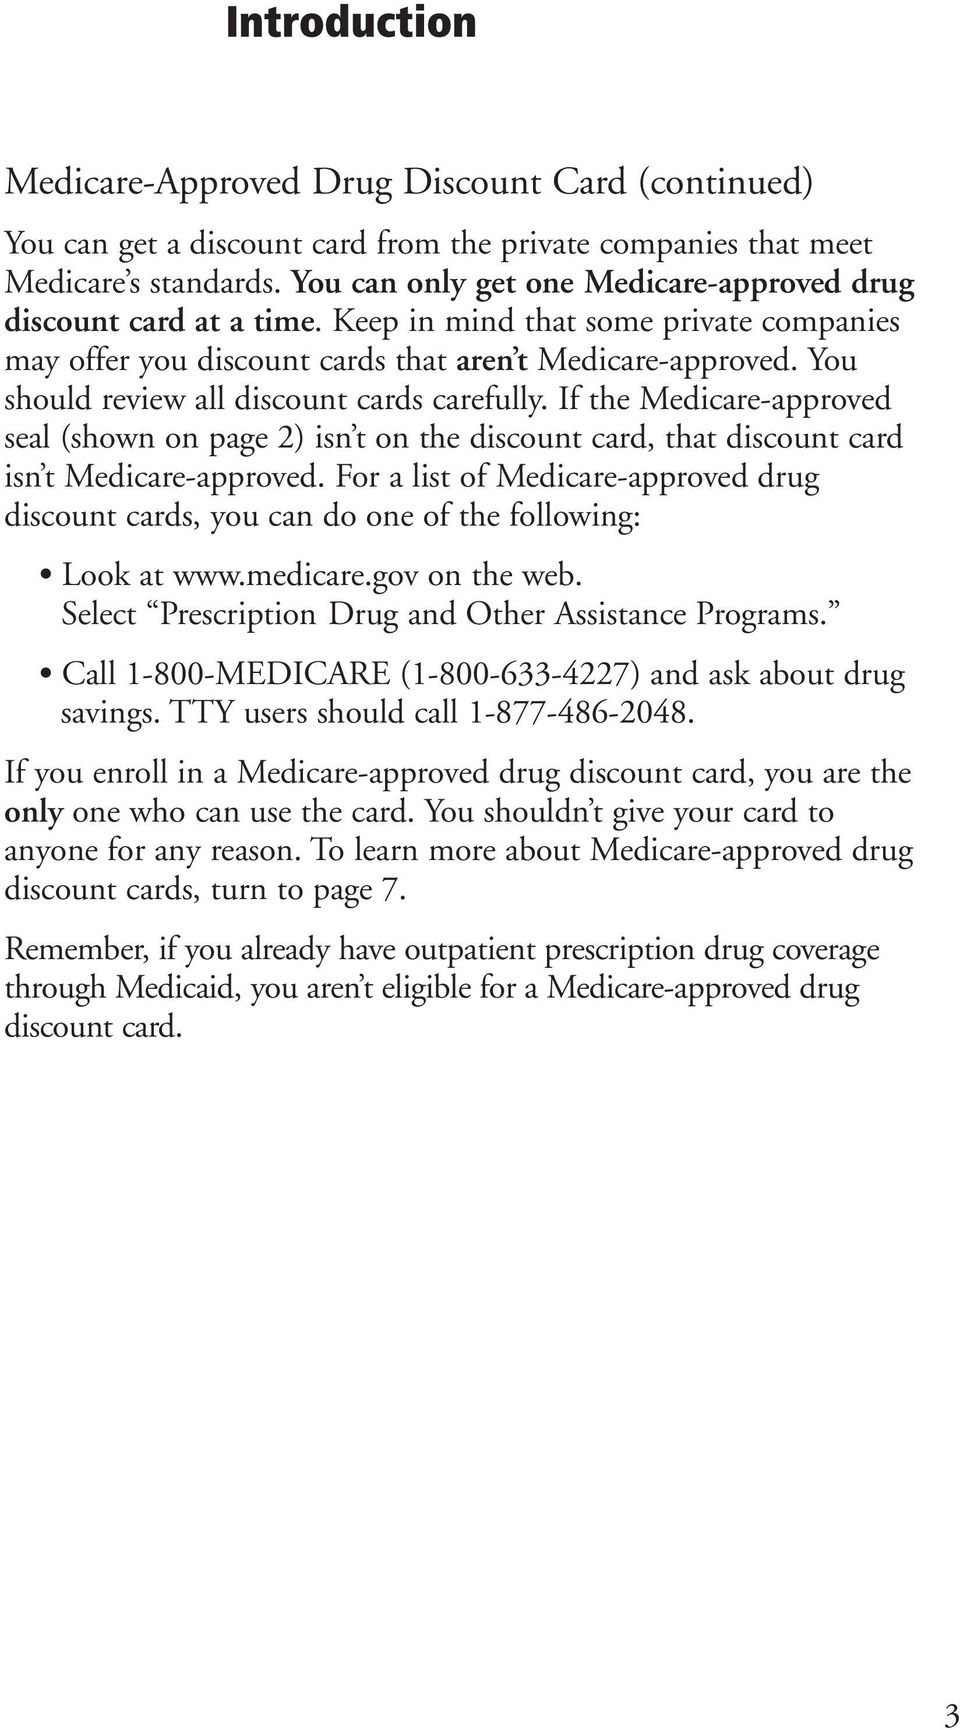 You should review all discount cards carefully. If the Medicare-approved seal (shown on page 2) isn t on the discount card, that discount card isn t Medicare-approved.